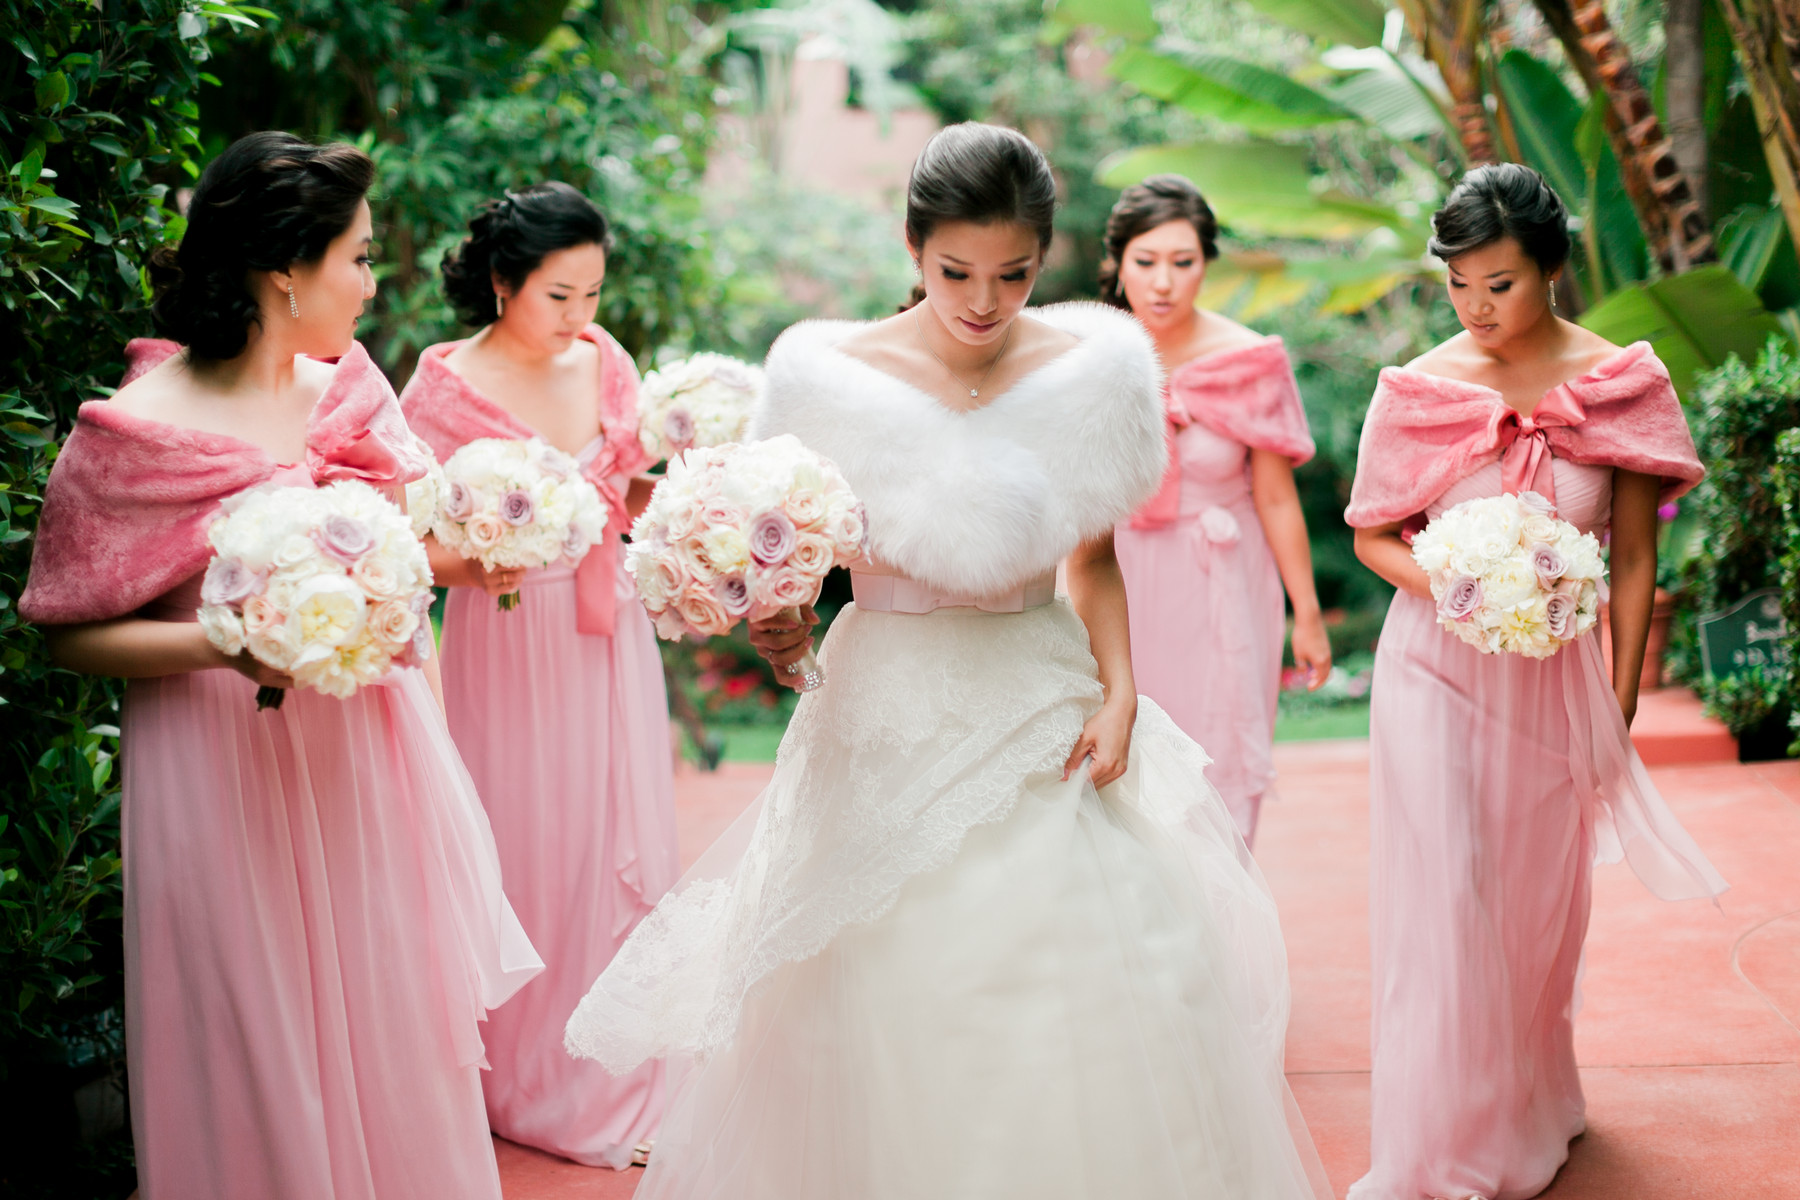 Bridal party wearing pink faux-wraps - photo by John and Joseph